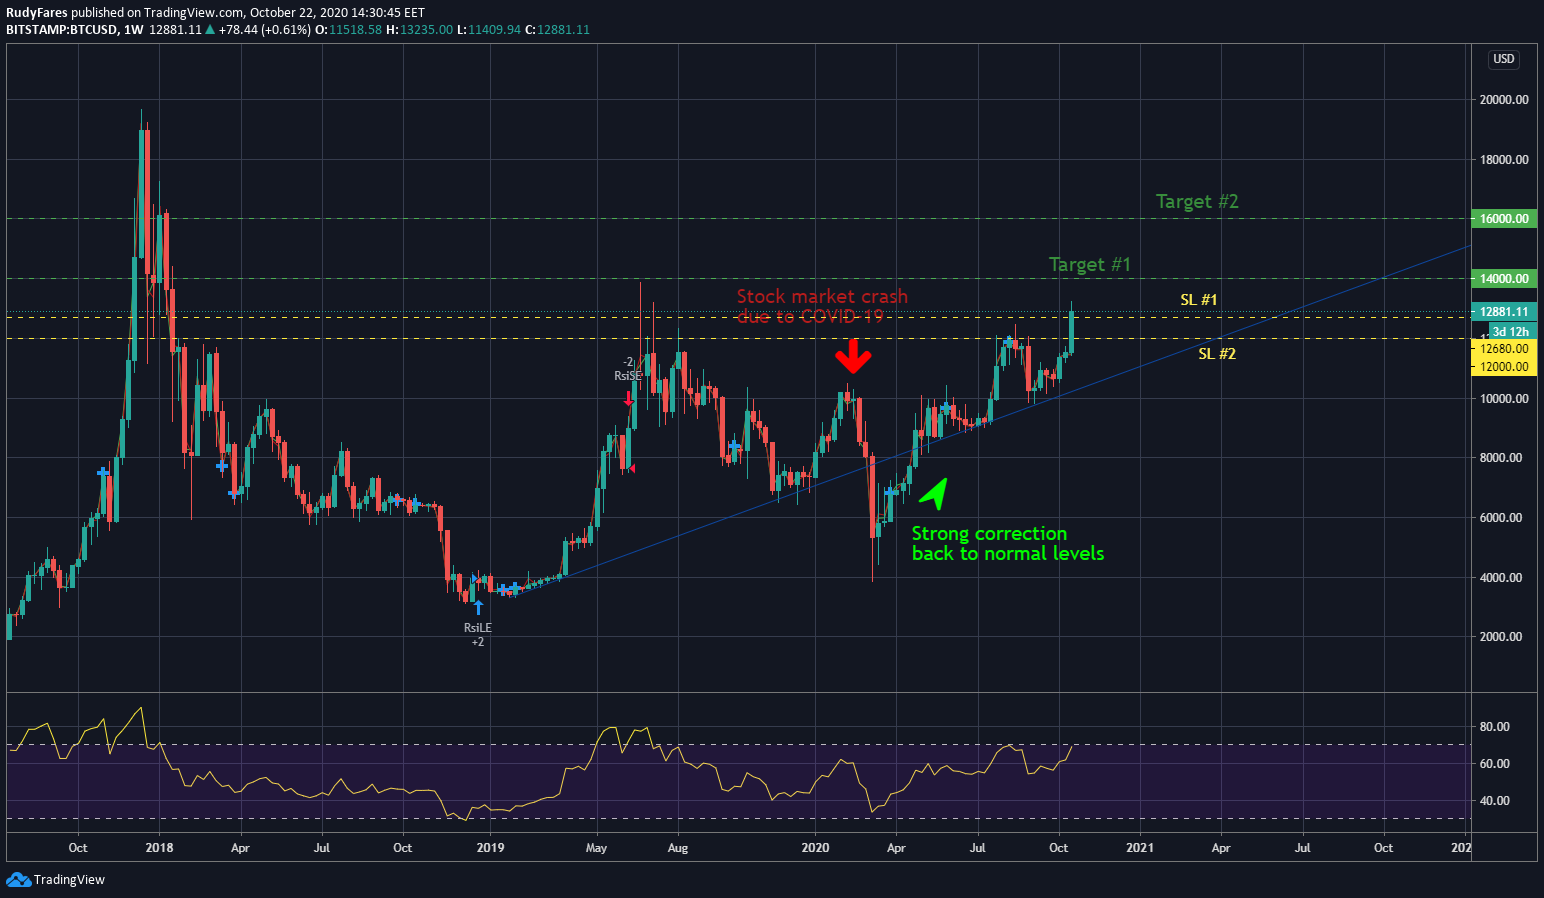 Trading View weekly chart showing the support levels and take profit of Bitcoin for day traders